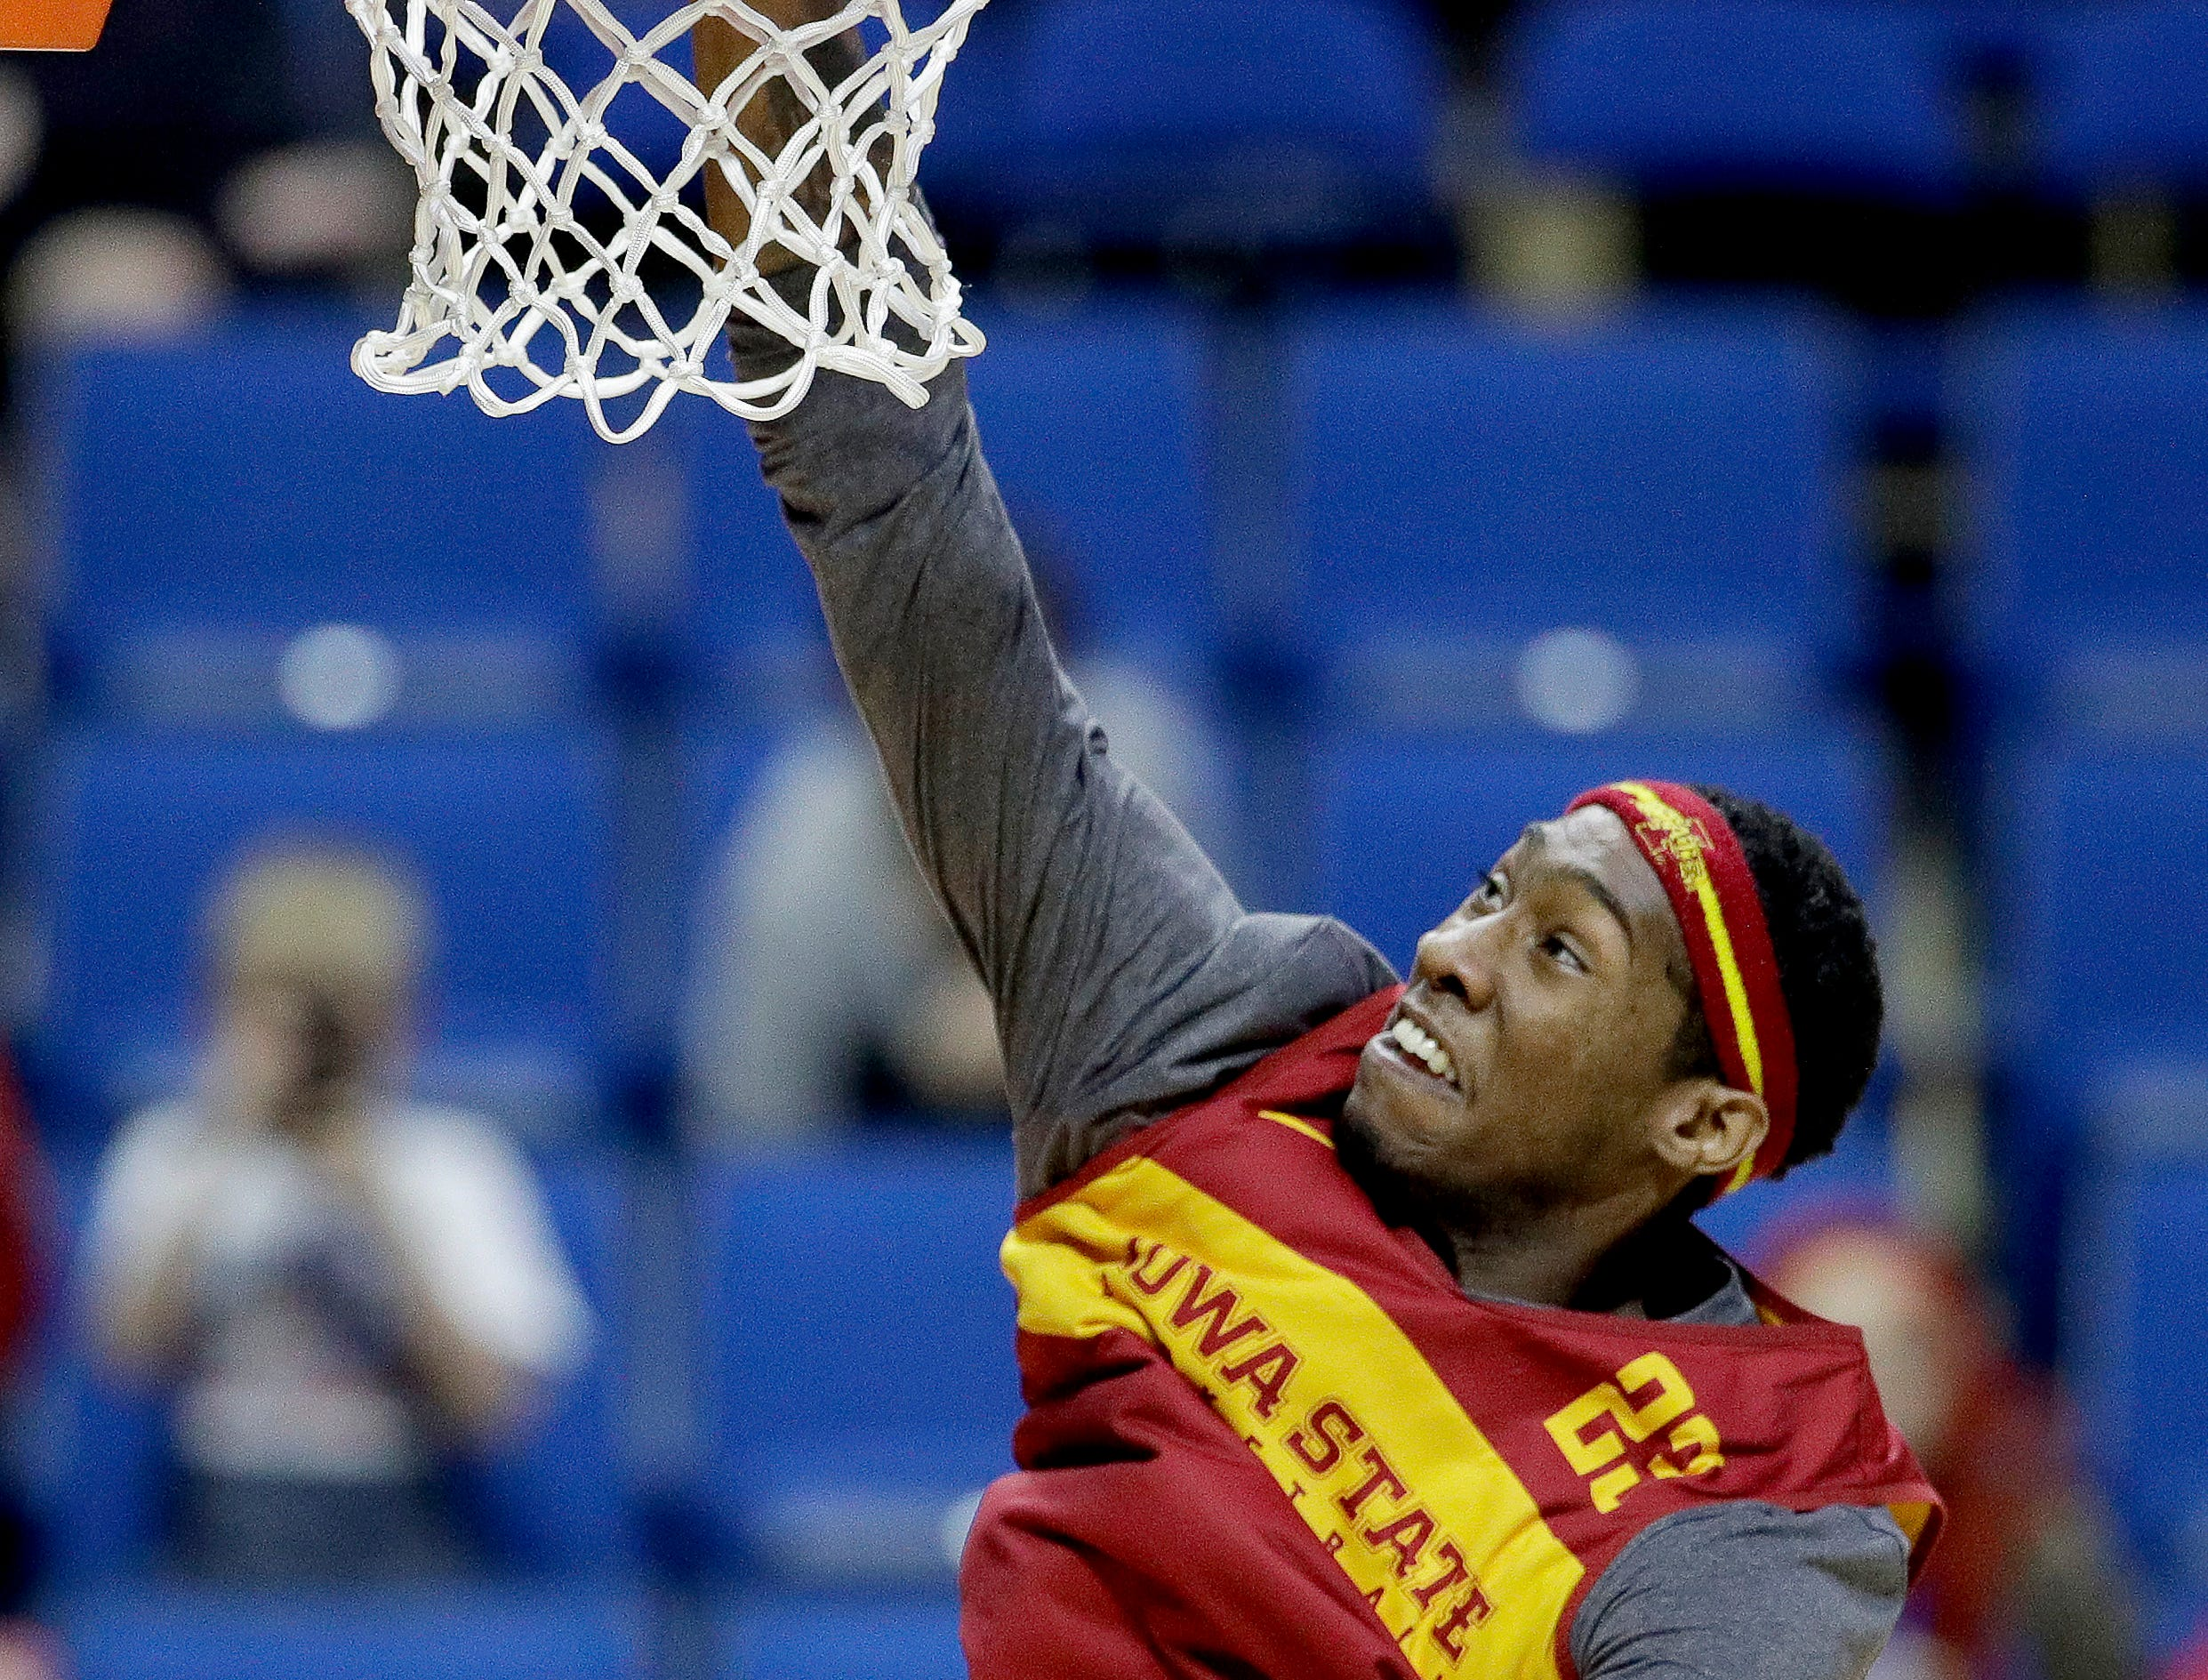 Iowa State's Zoran Talley Jr. puts up a shot during practice for the NCAA men's college basketball tournament Thursday, March 21, 2019, in Tulsa, Oklahoma.